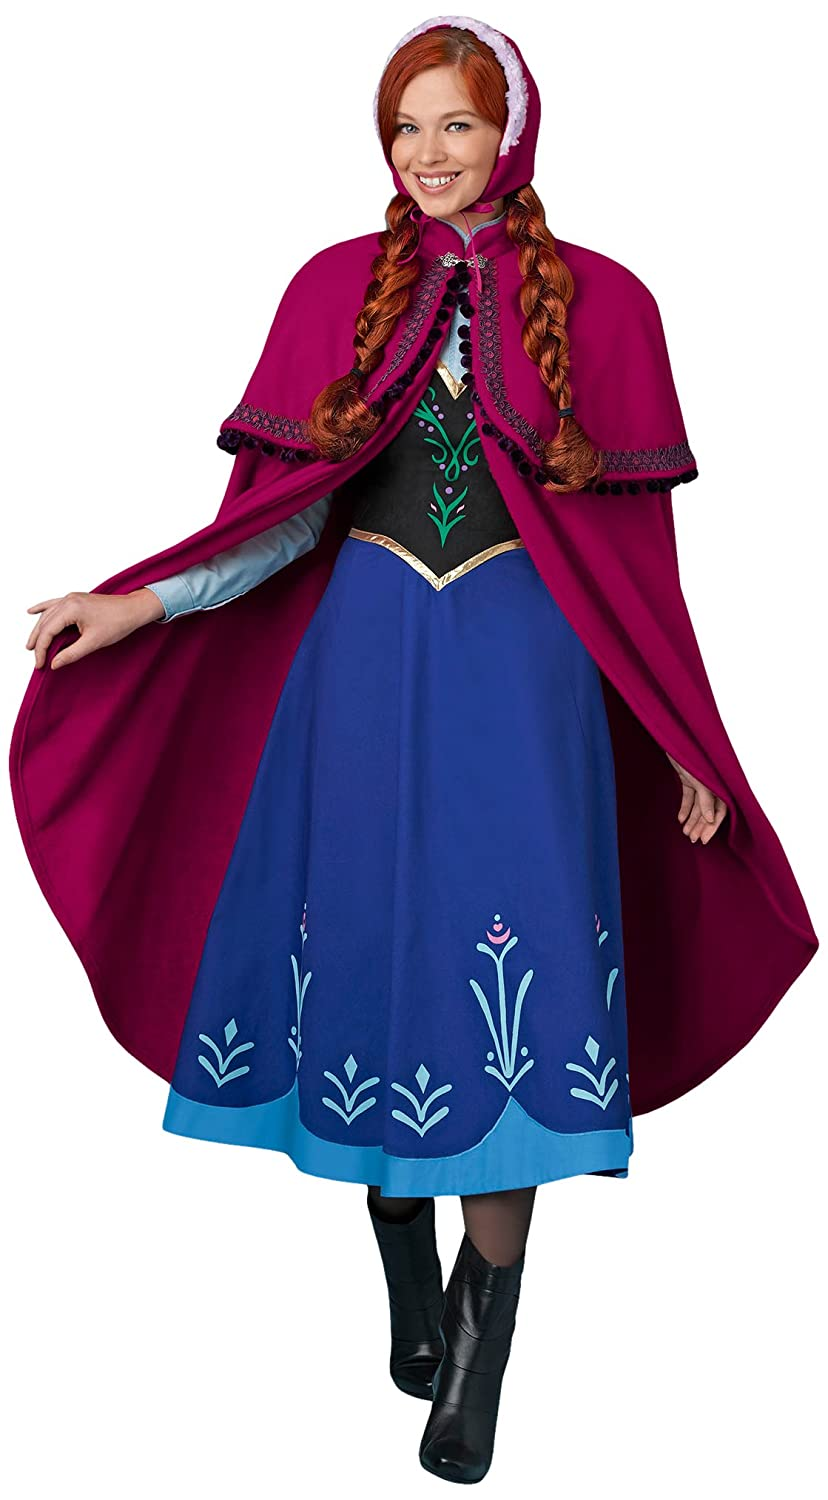 Amazon.com Simplicity Creative Patterns 1210 Disney Frozen Costumes for Missesu0027 R5 (14-16-18-20-22) Arts Crafts u0026 Sewing  sc 1 st  Amazon.com & Amazon.com: Simplicity Creative Patterns 1210 Disney Frozen Costumes ...